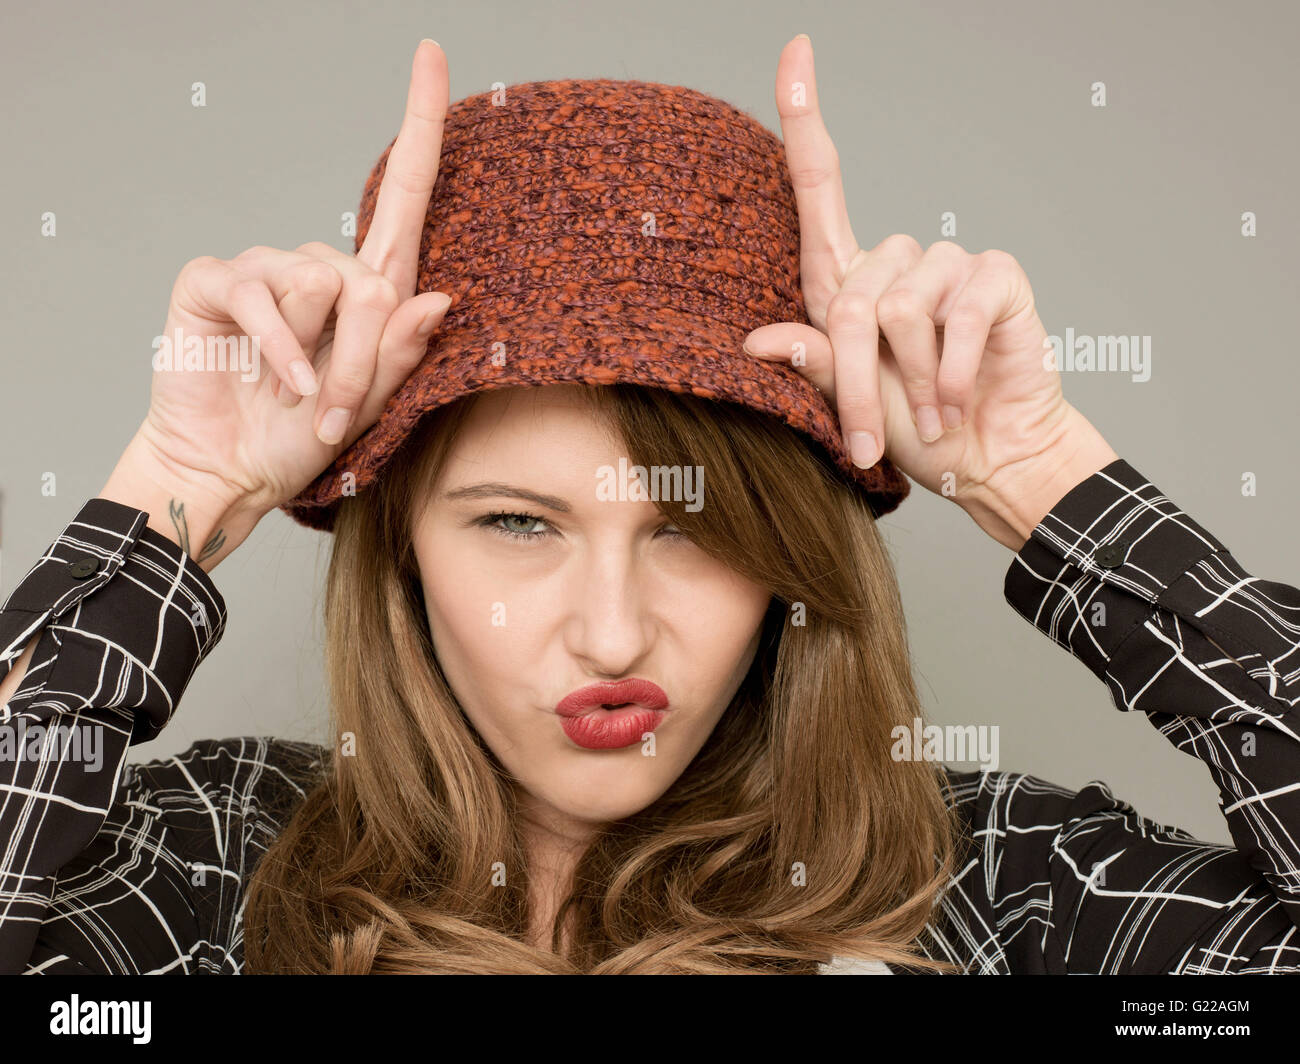 Portrait of A Woman Being or Acting Silly Pulling Faces and Acting the Fool With Finger Gestures and Humorous Facial - Stock Image